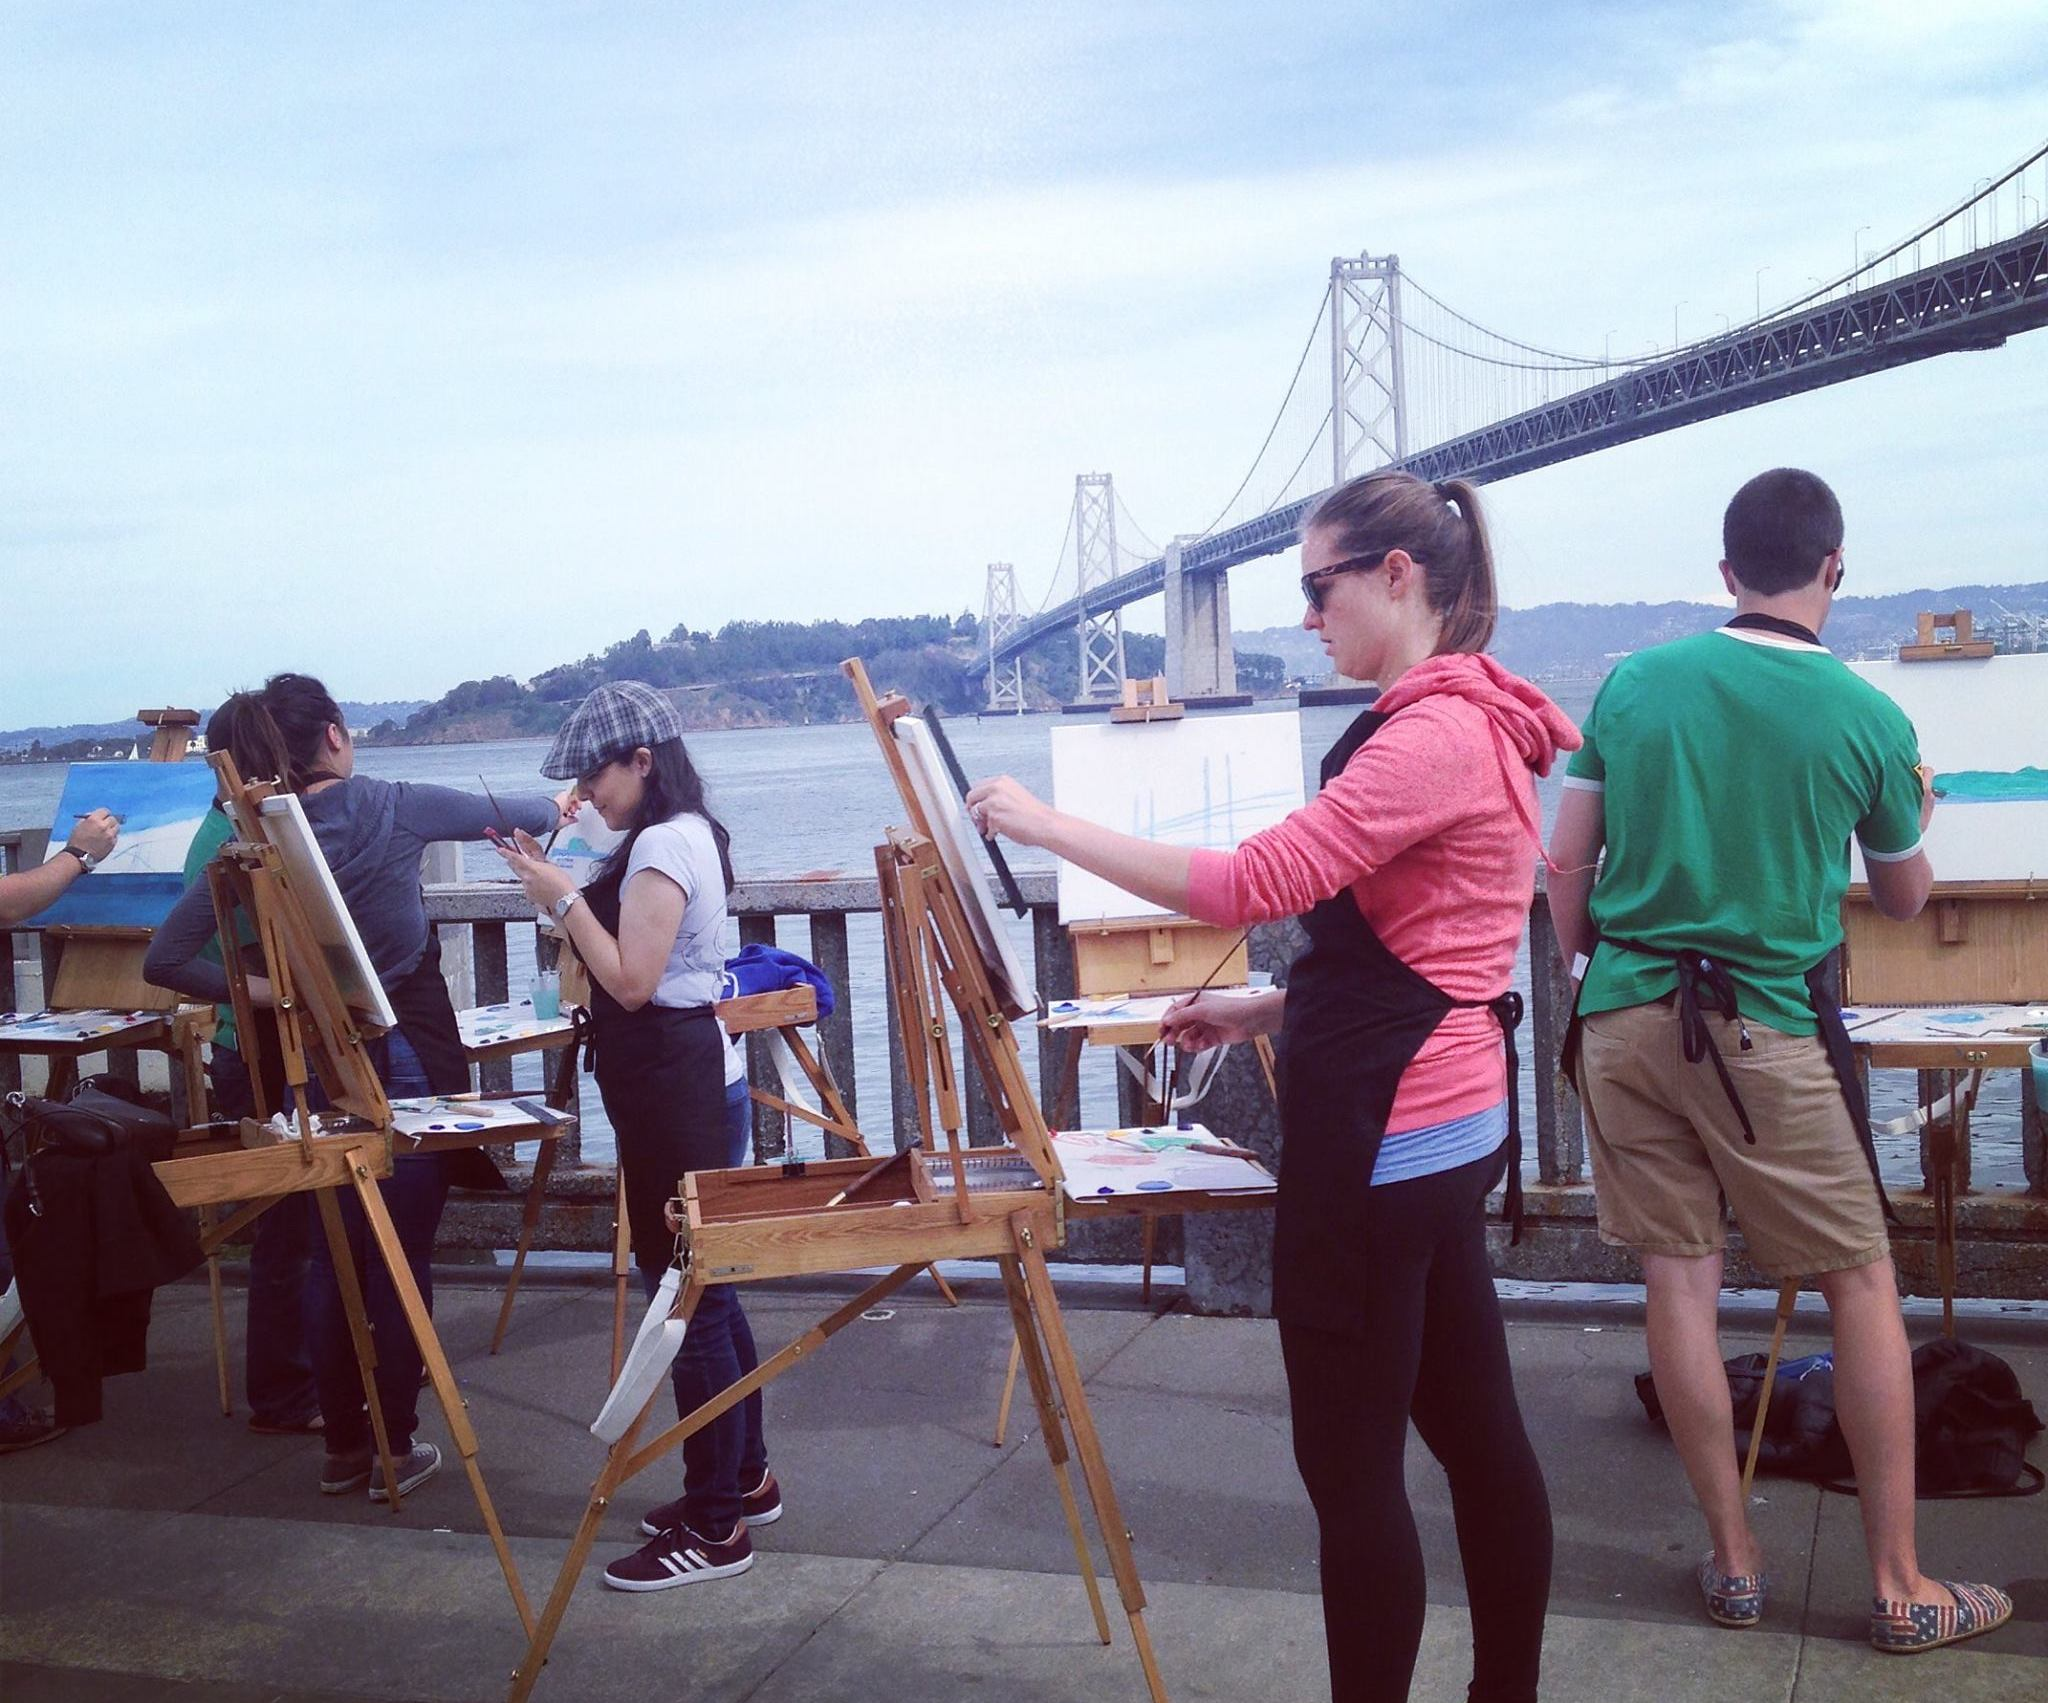 beyond canvas and their painting classes are a great way to meet individuals in the bay area